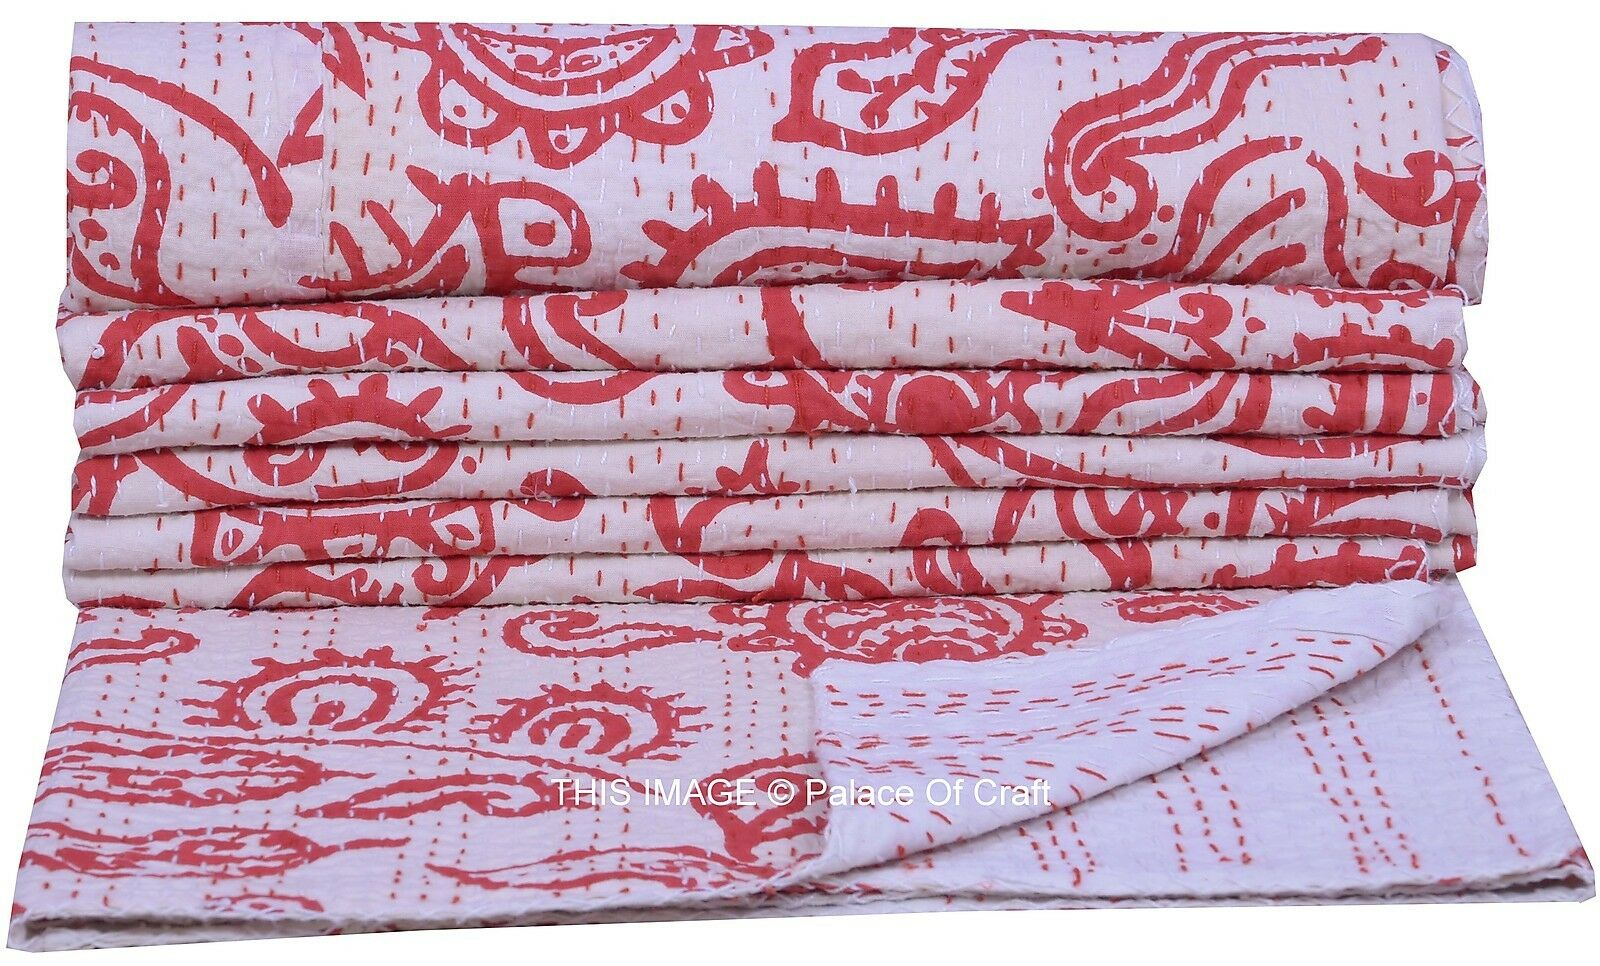 Cotton Handmade Floral Print White Gudari Bedding Decor Kantha Stitch Work India